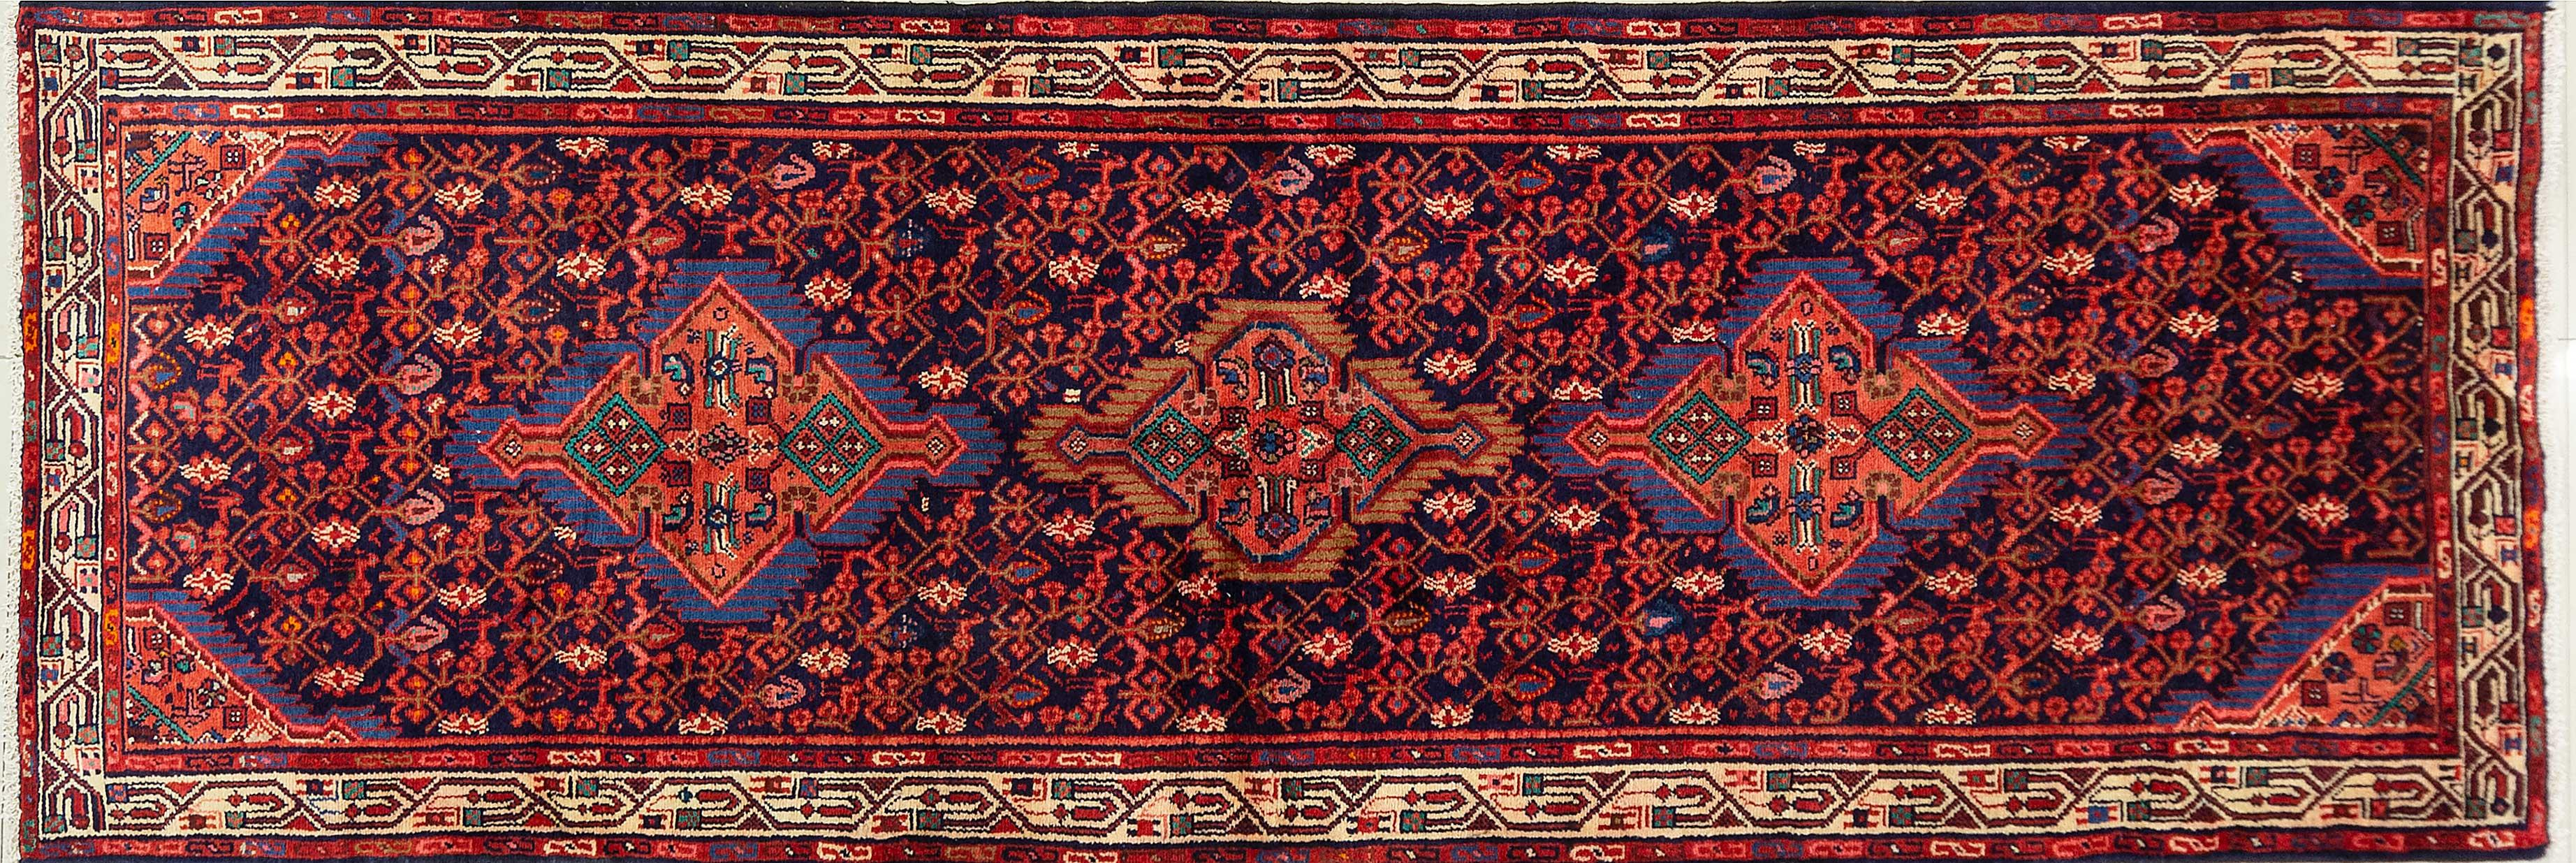 A Persian Hand Knotted Hamadan Runner, 318 X 110